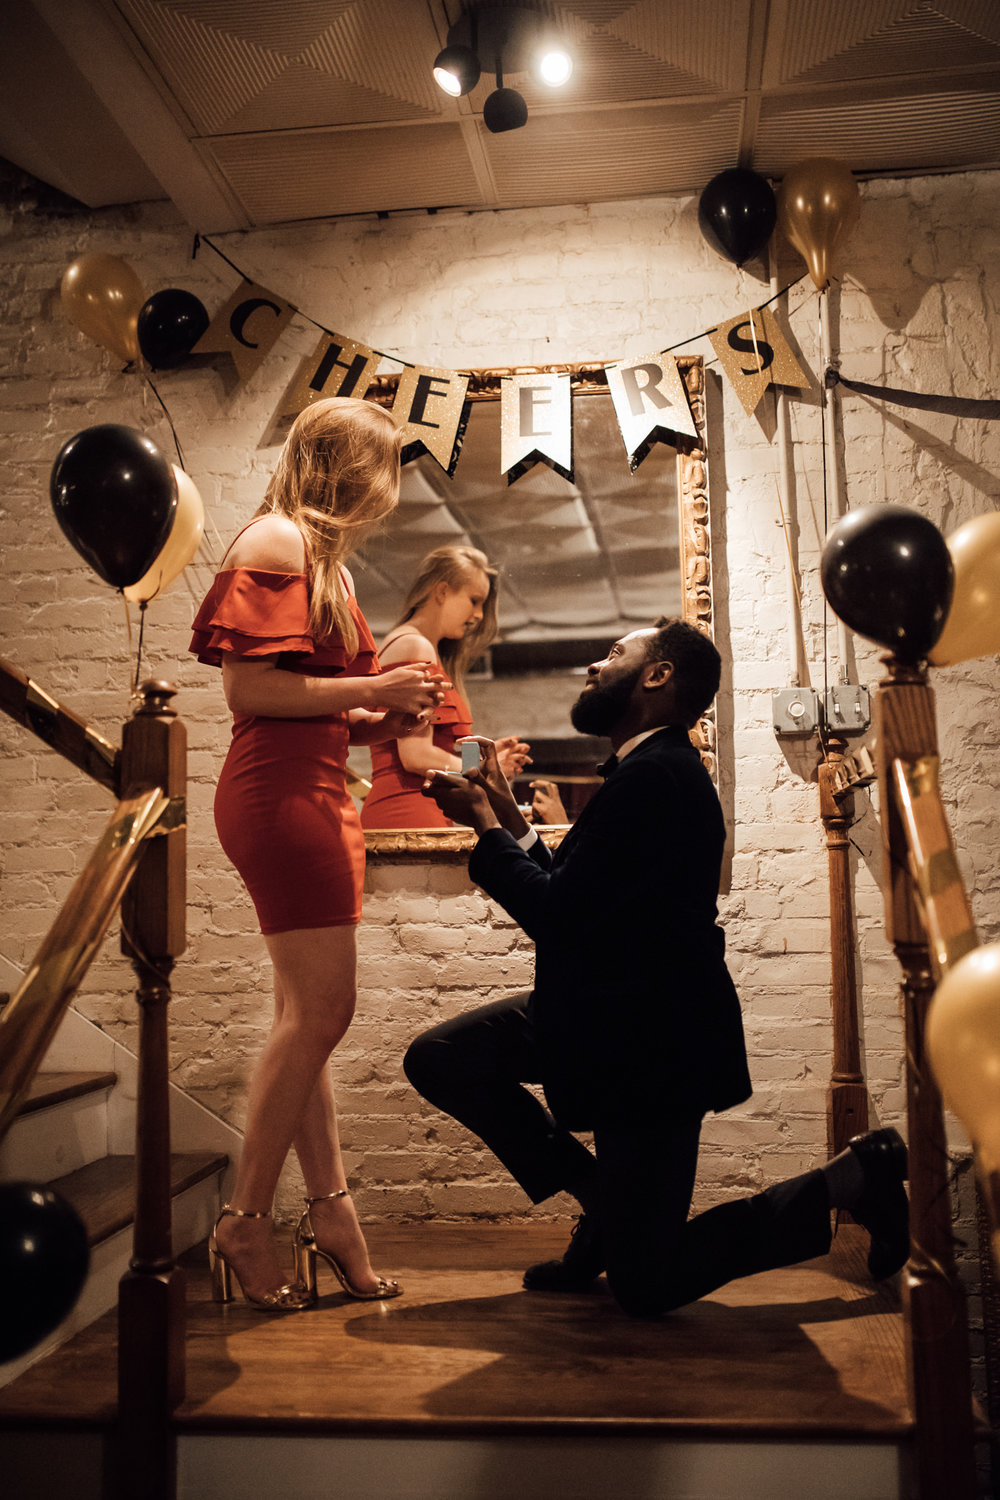 memphis-engagement-photographer-new-years-eve-proposal-cassie-cook-photography-7.jpg